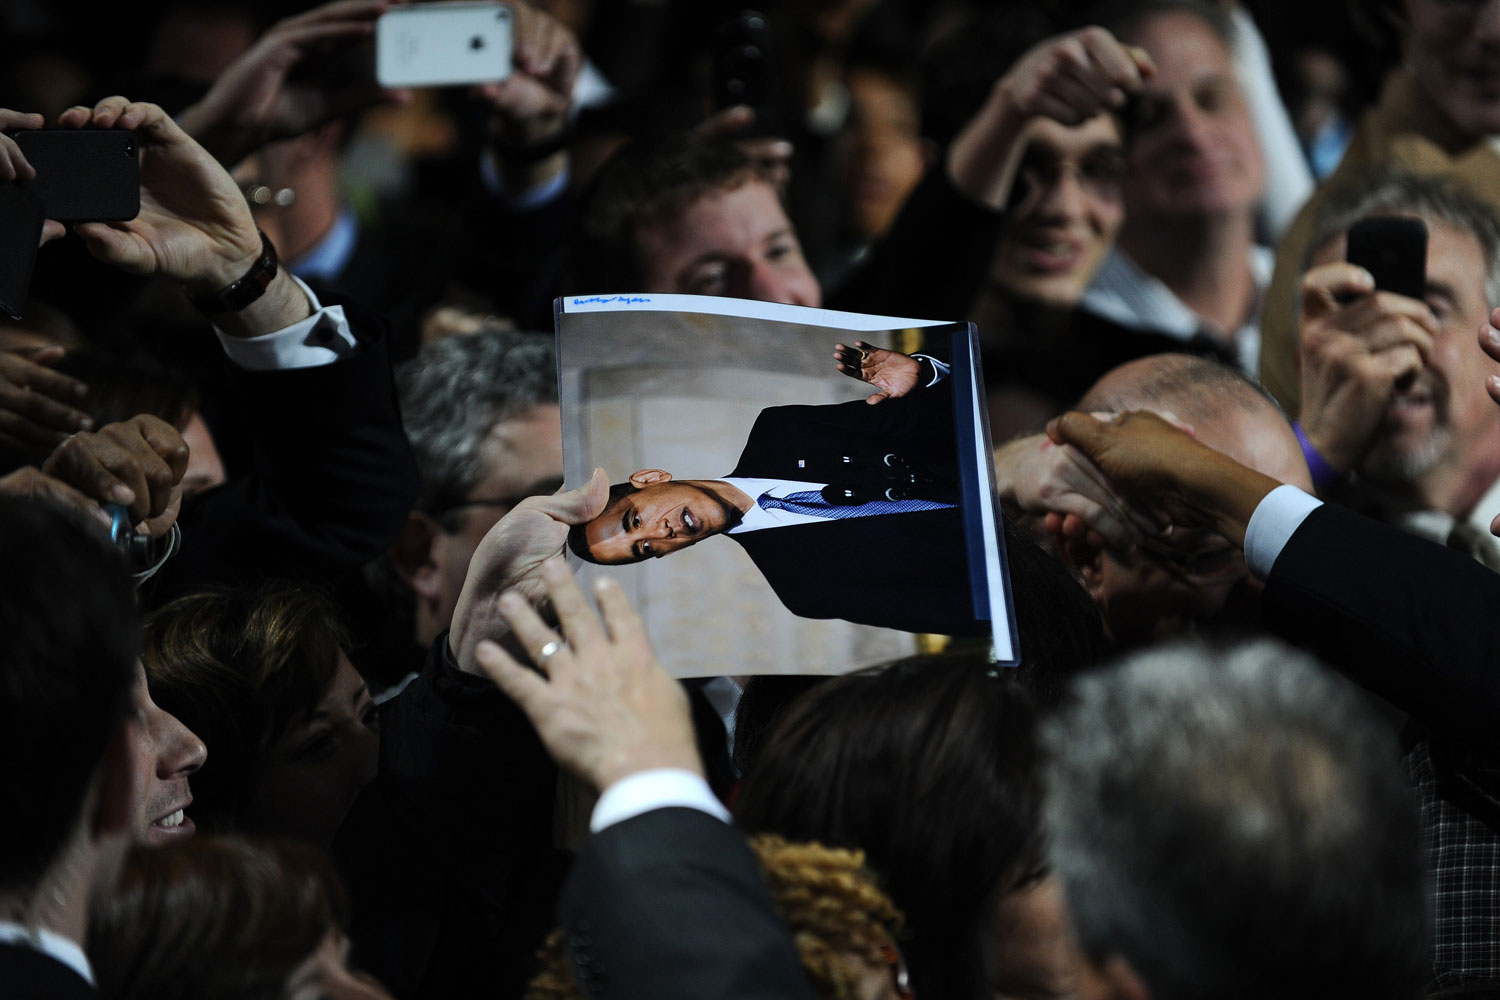 January 11, 2012. A supporter holds a picture of US President Barack Obama during a campaign event at the University of Illinois at Chicago in Chicago, Illinois.